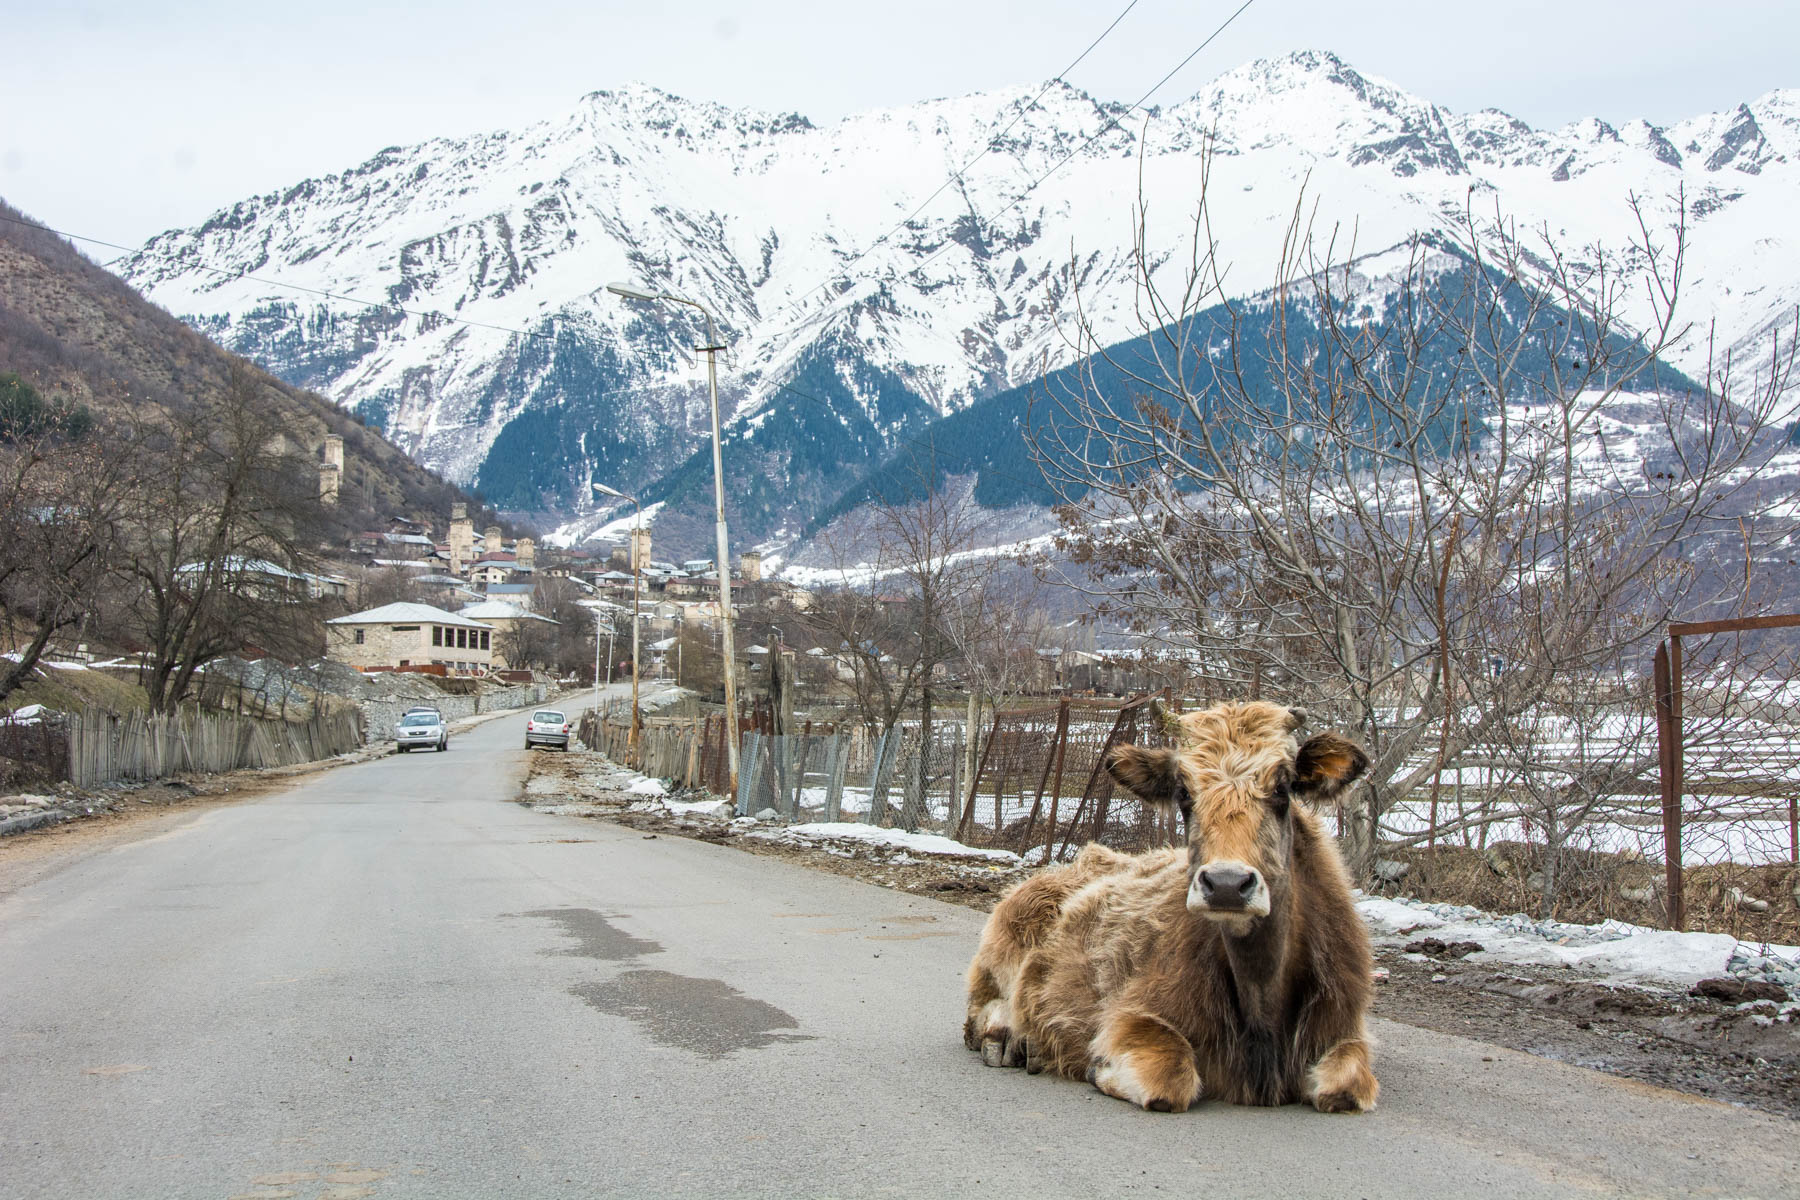 Cow sitting on road in Mestia, a town in Svaneti, Georgia